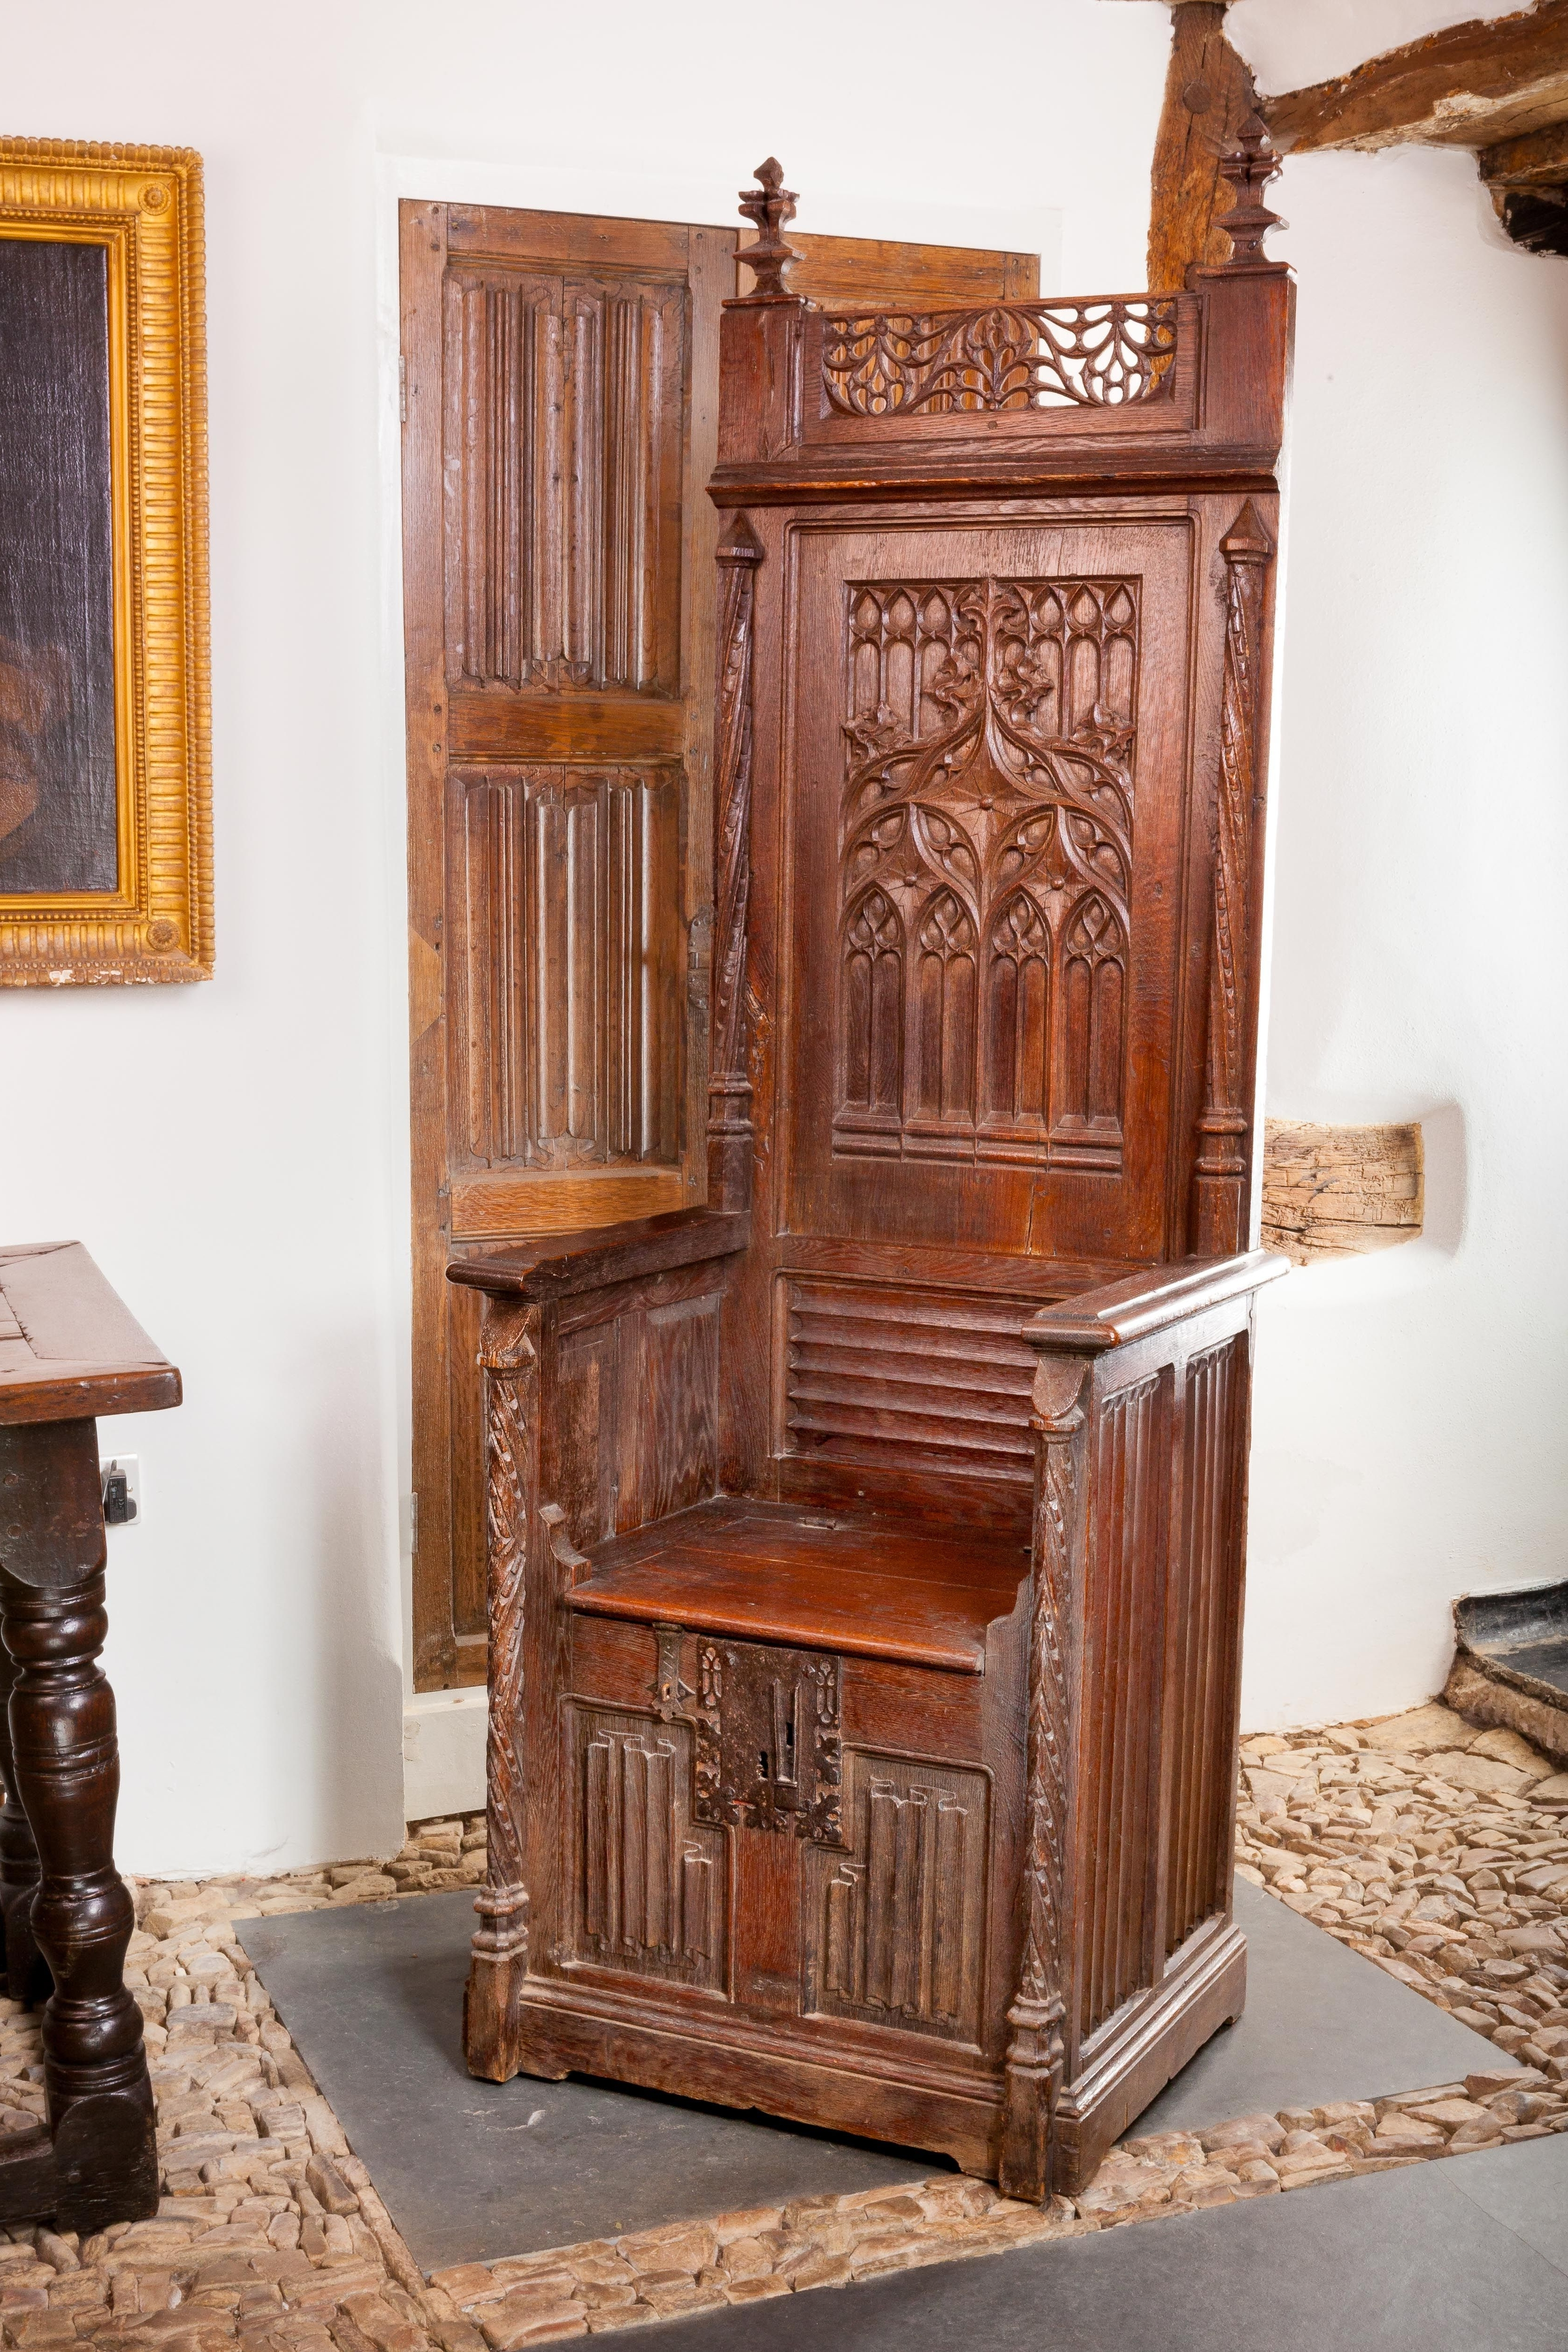 Preferred Gothic Throne Chair, Circa 1460 – 1480, Marhamchurch Antiques With Regard To Gothic Sofas (View 15 of 20)